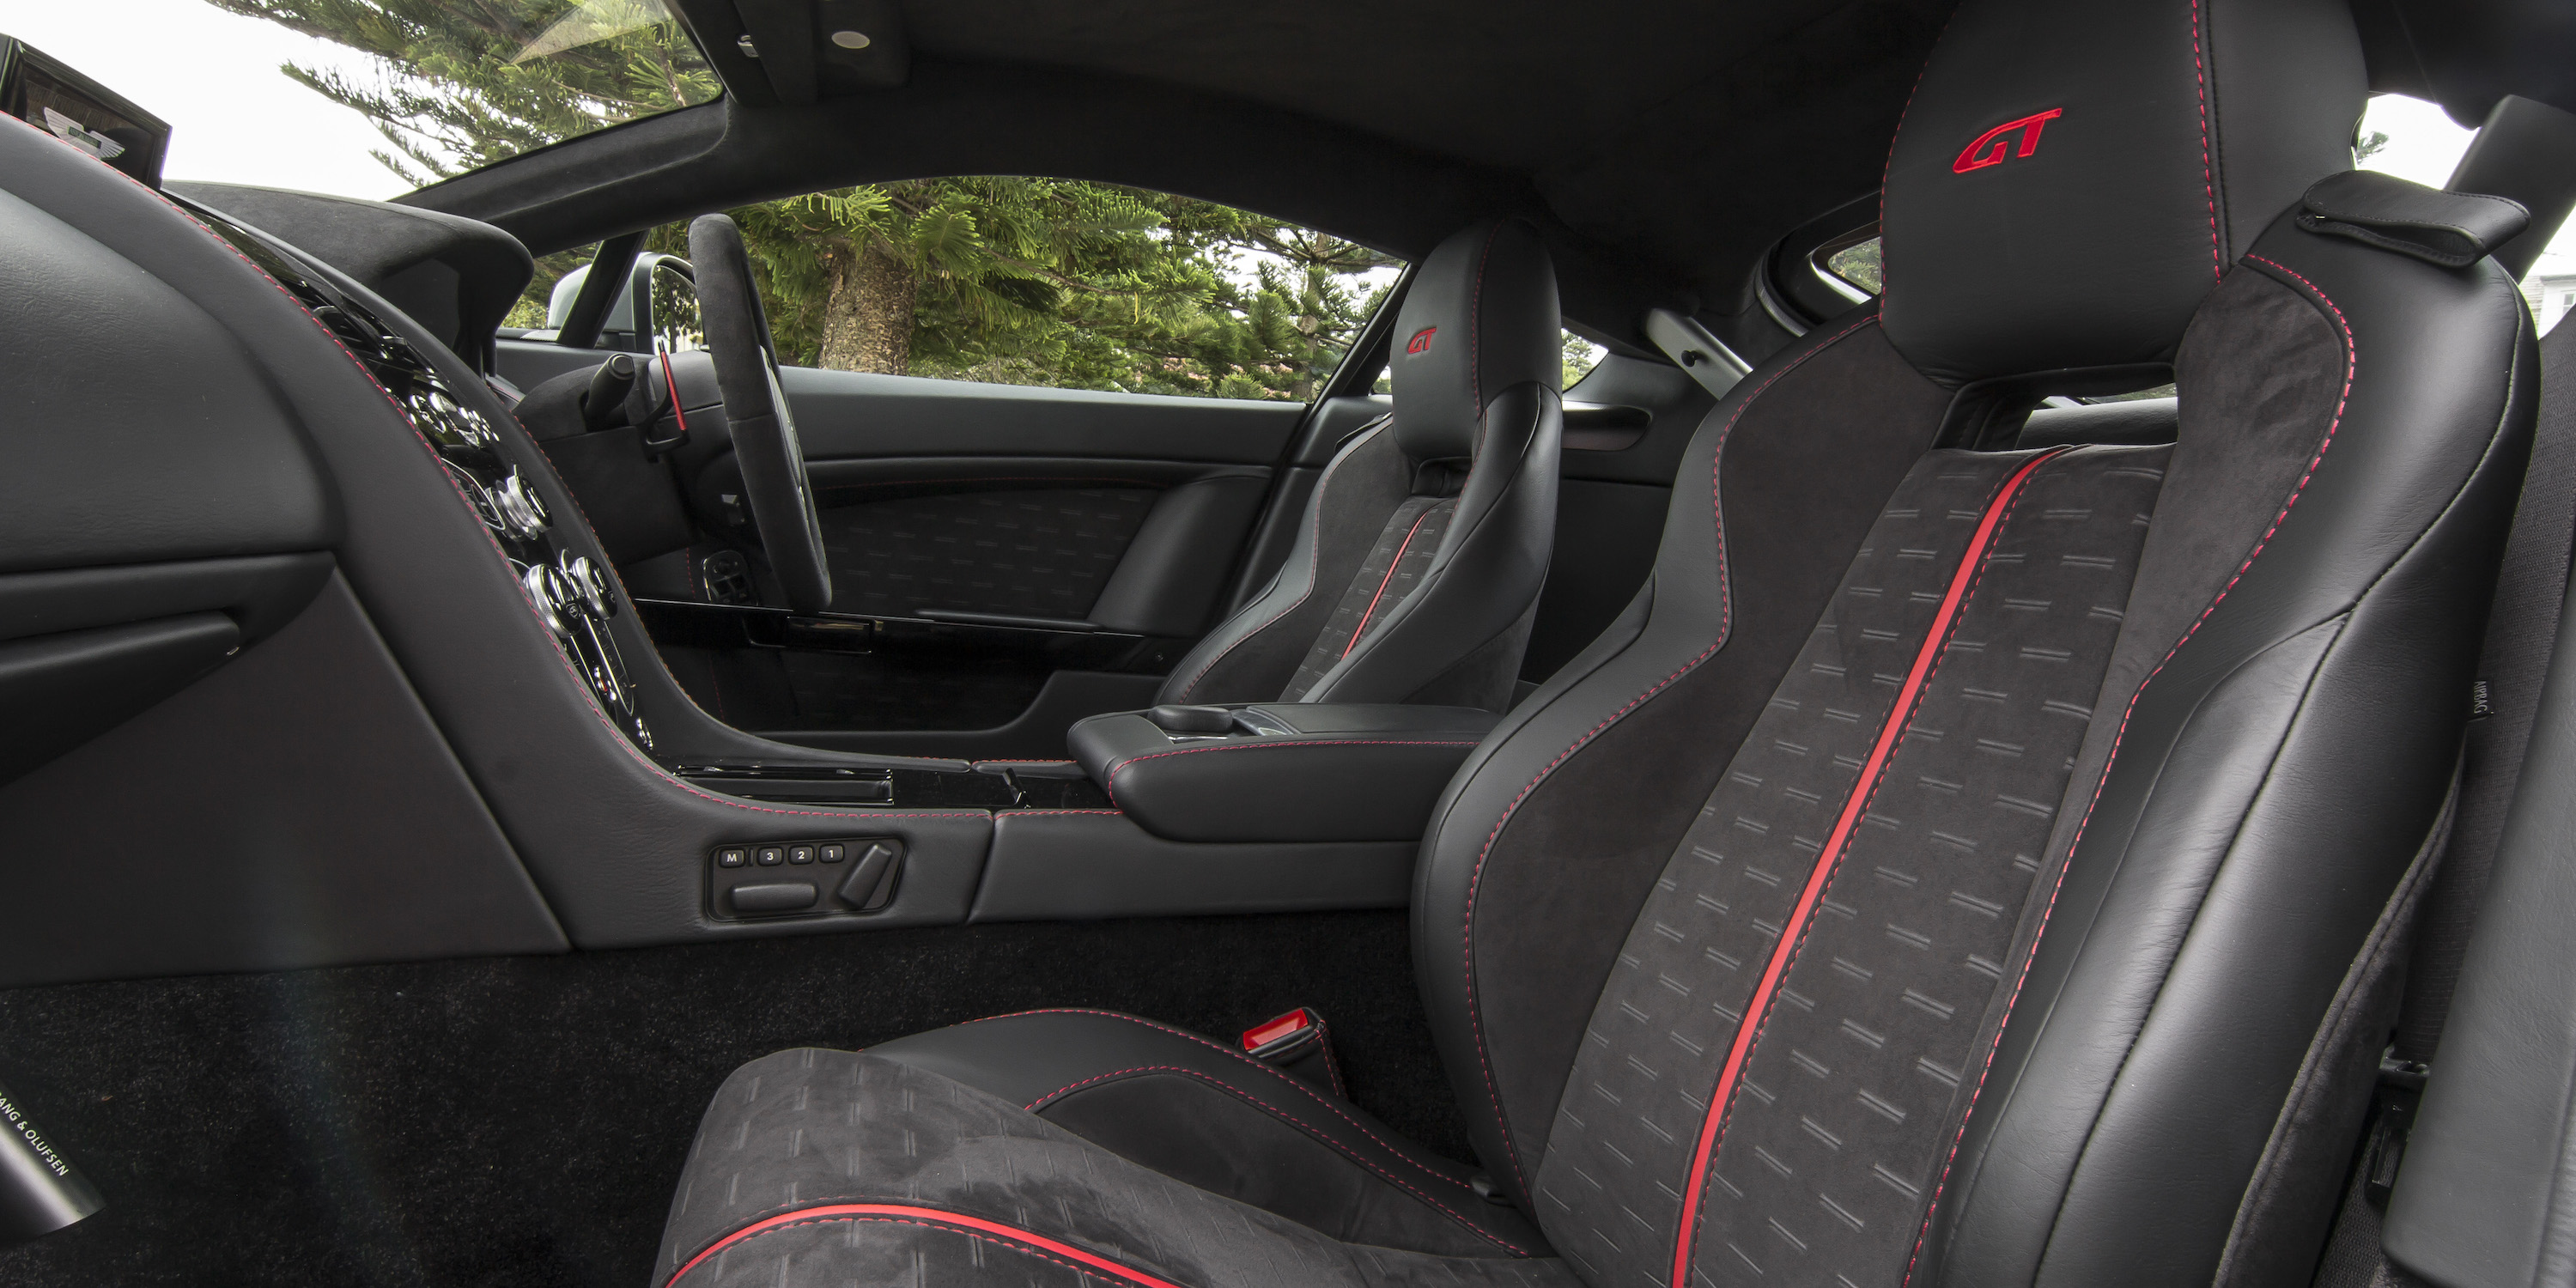 2016 Aston Martin Vantage Gt Front Seats Interior (View 22 of 25)